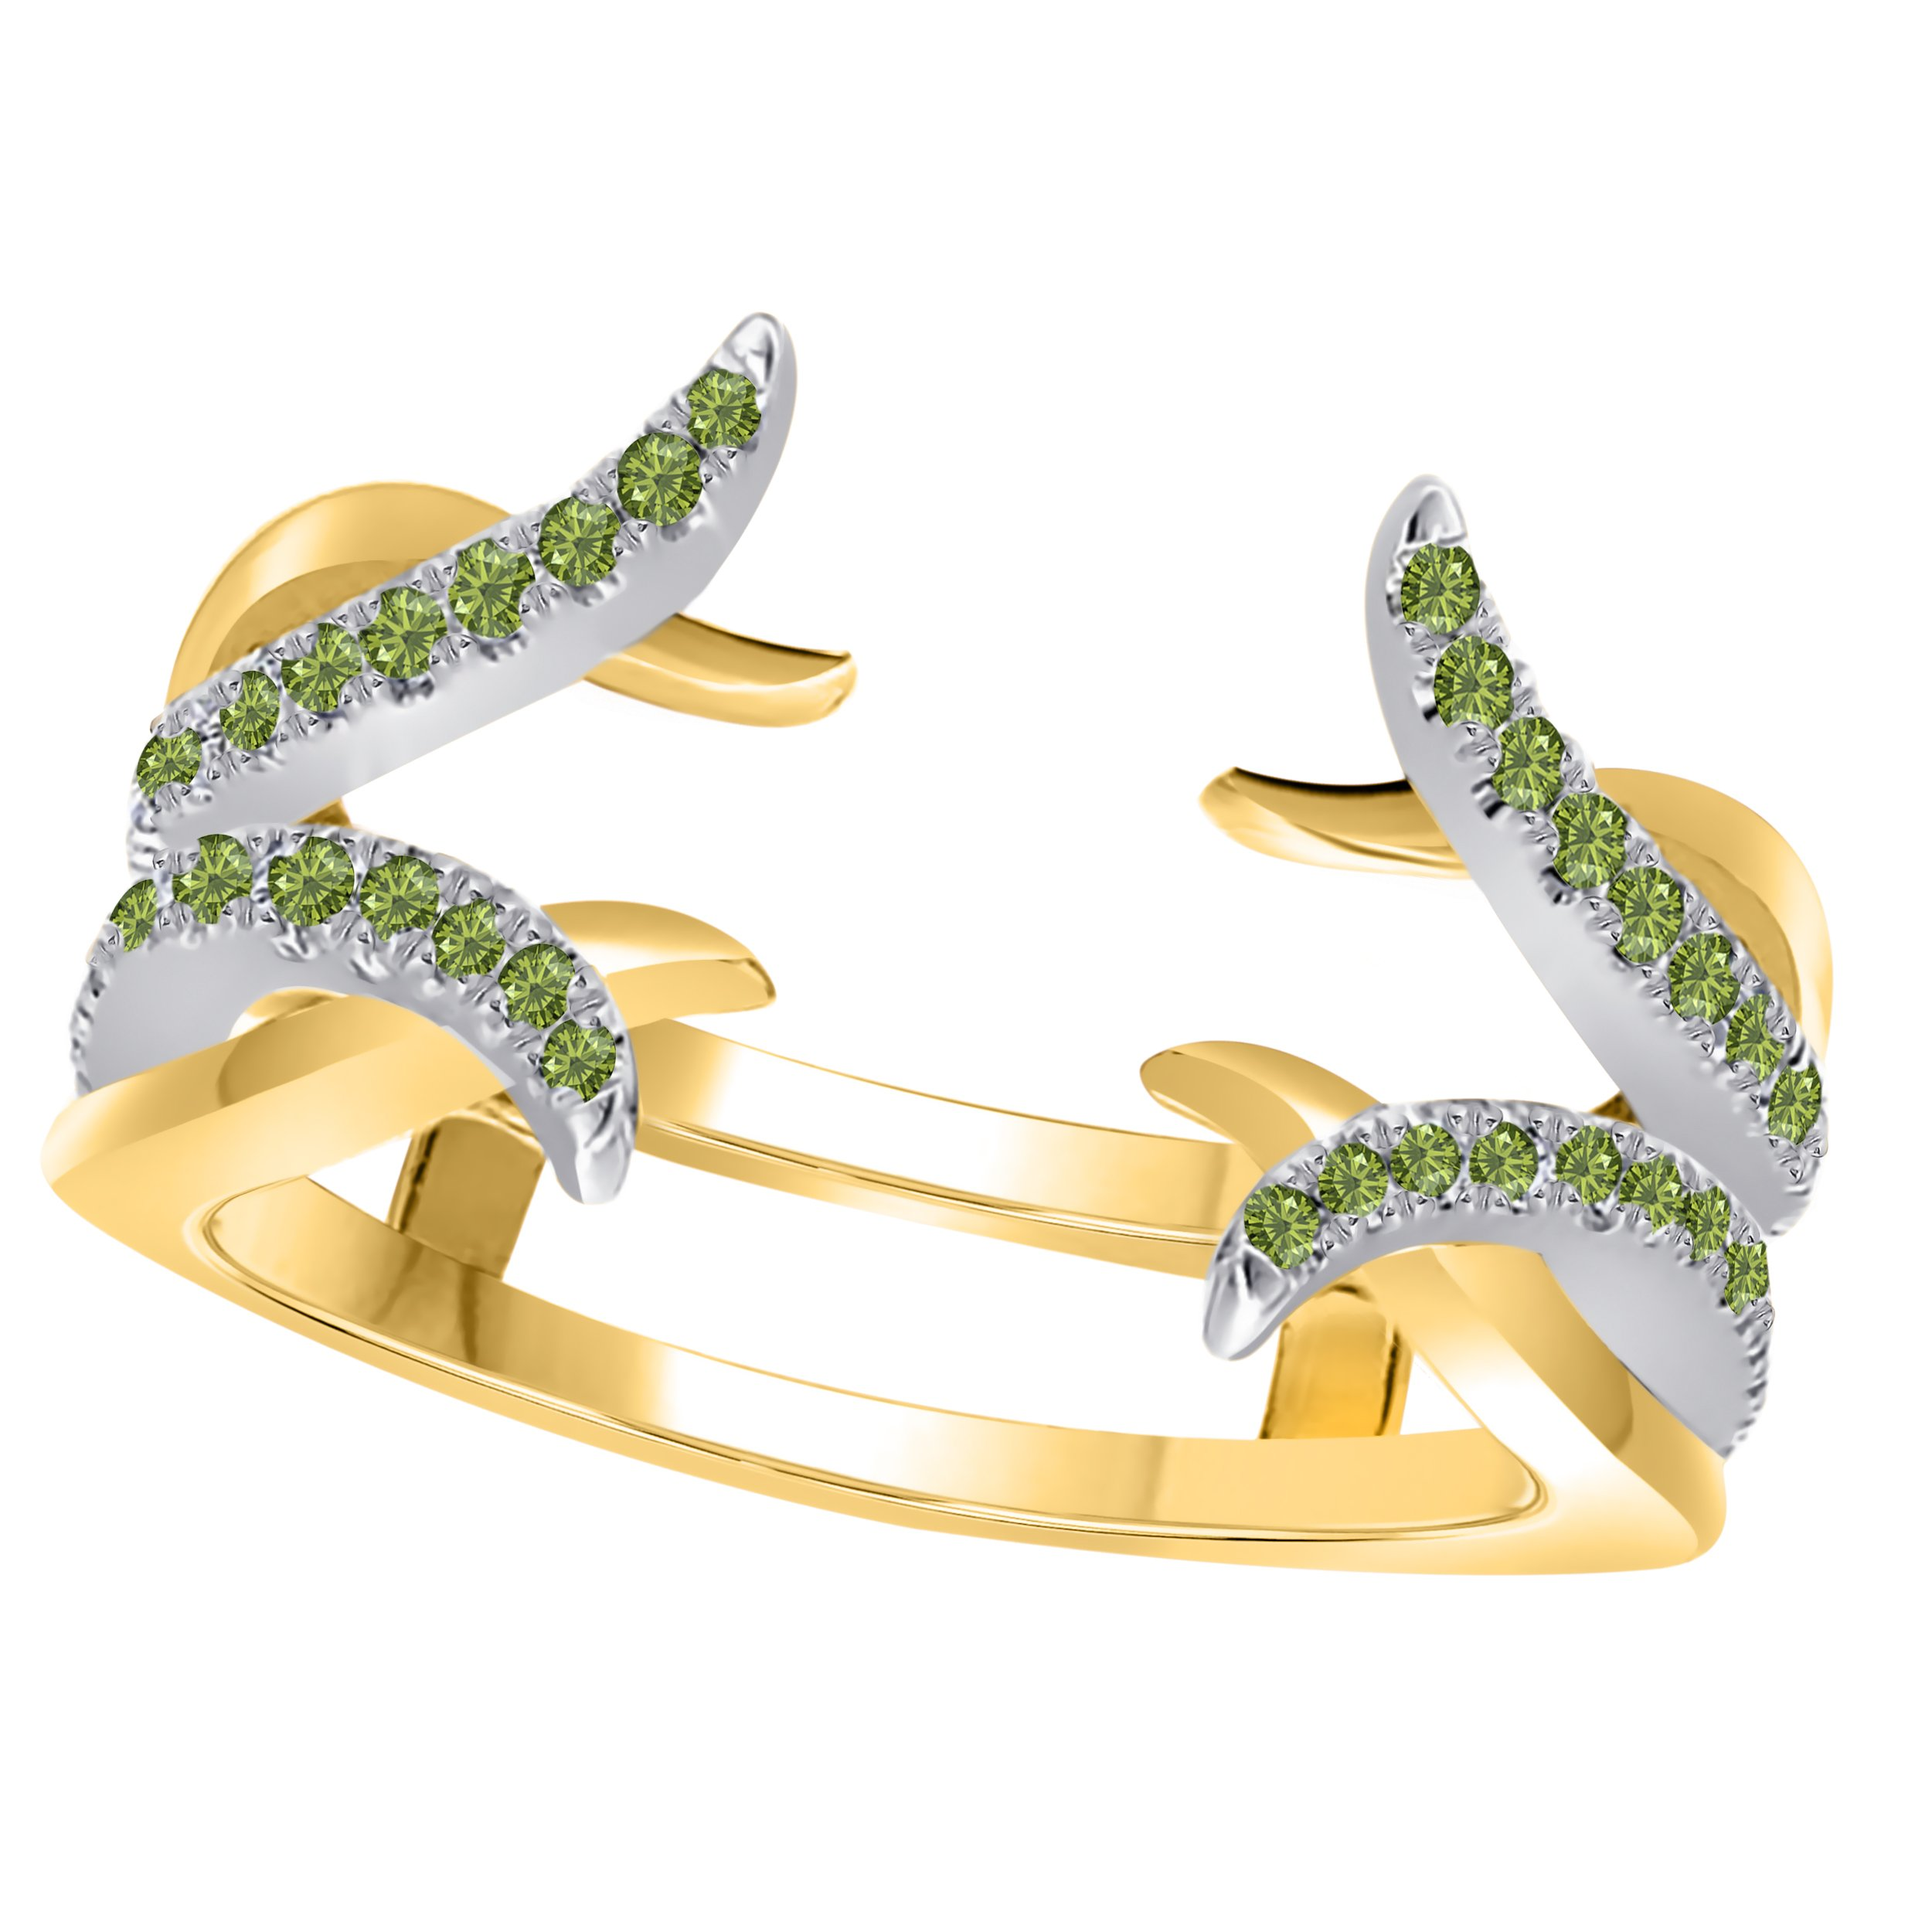 RSJ Global Sterling Silver Plated Alloy Created Green-Peridot Round Solitaire Ring Guard Wrap Enhancer Jacket Wedding Engagement Ring Size 4 to 11